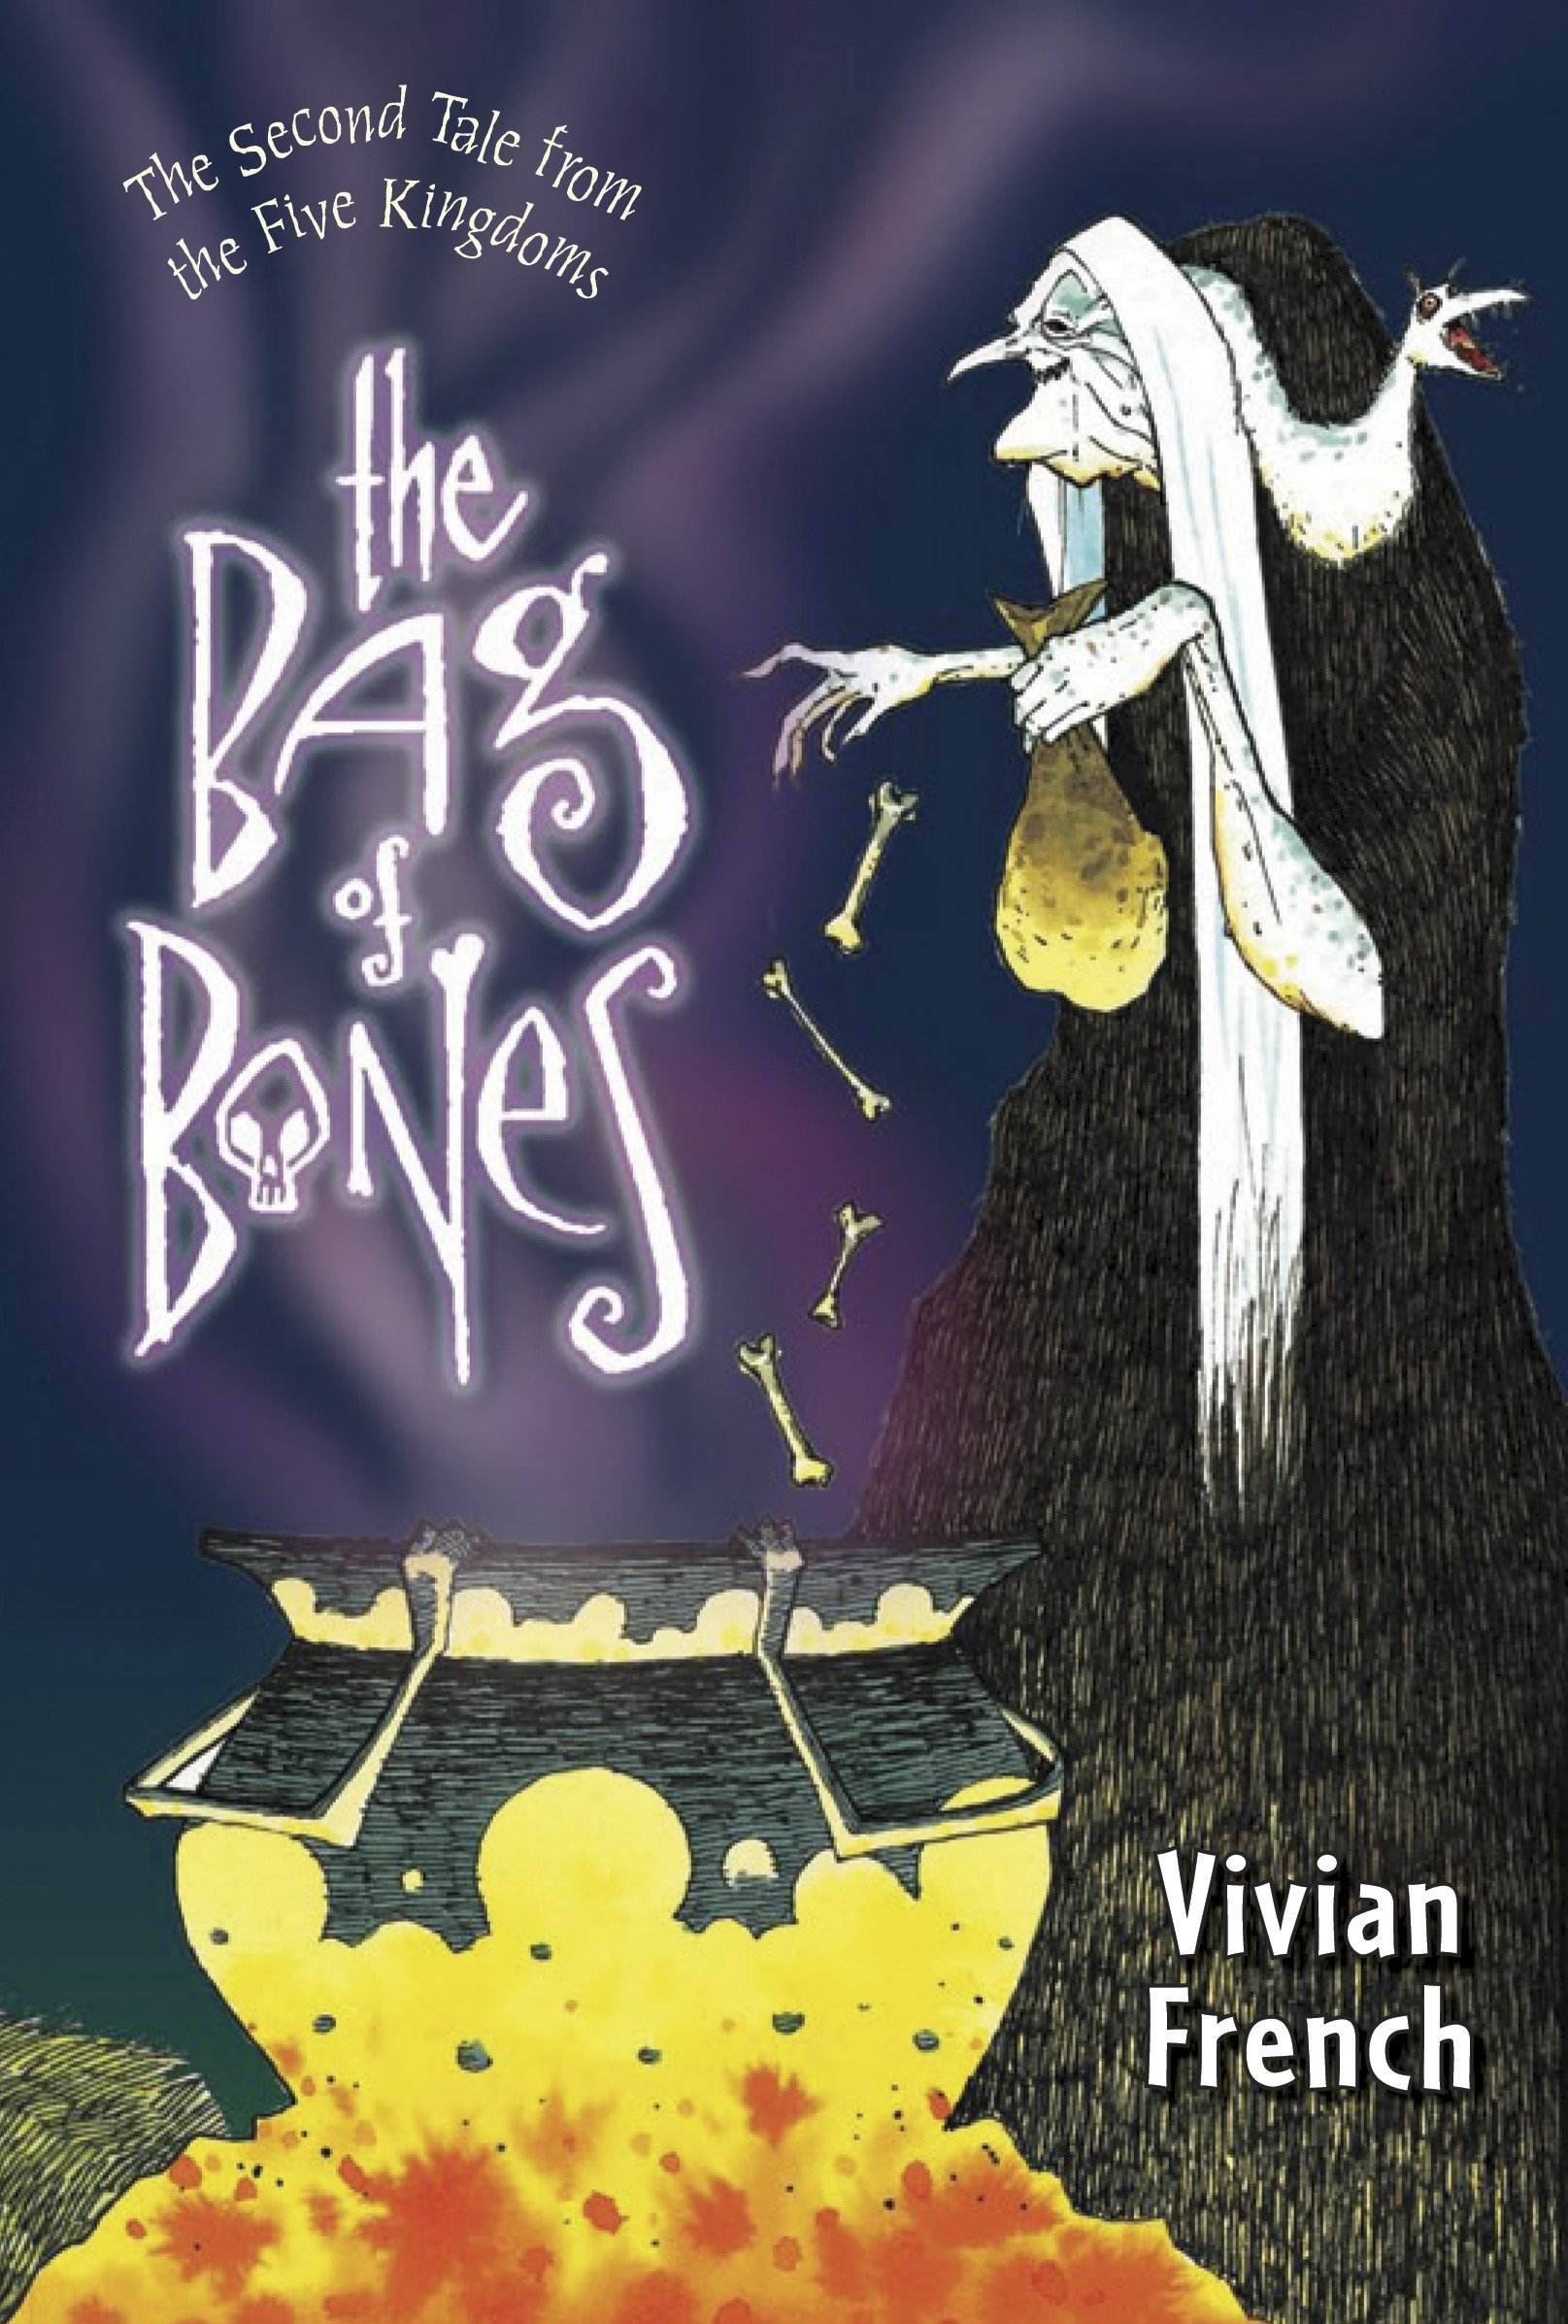 Read Online The Bag of Bones: The Second Tale from the Five Kingdoms (Tales from the Five Kingdoms) pdf epub